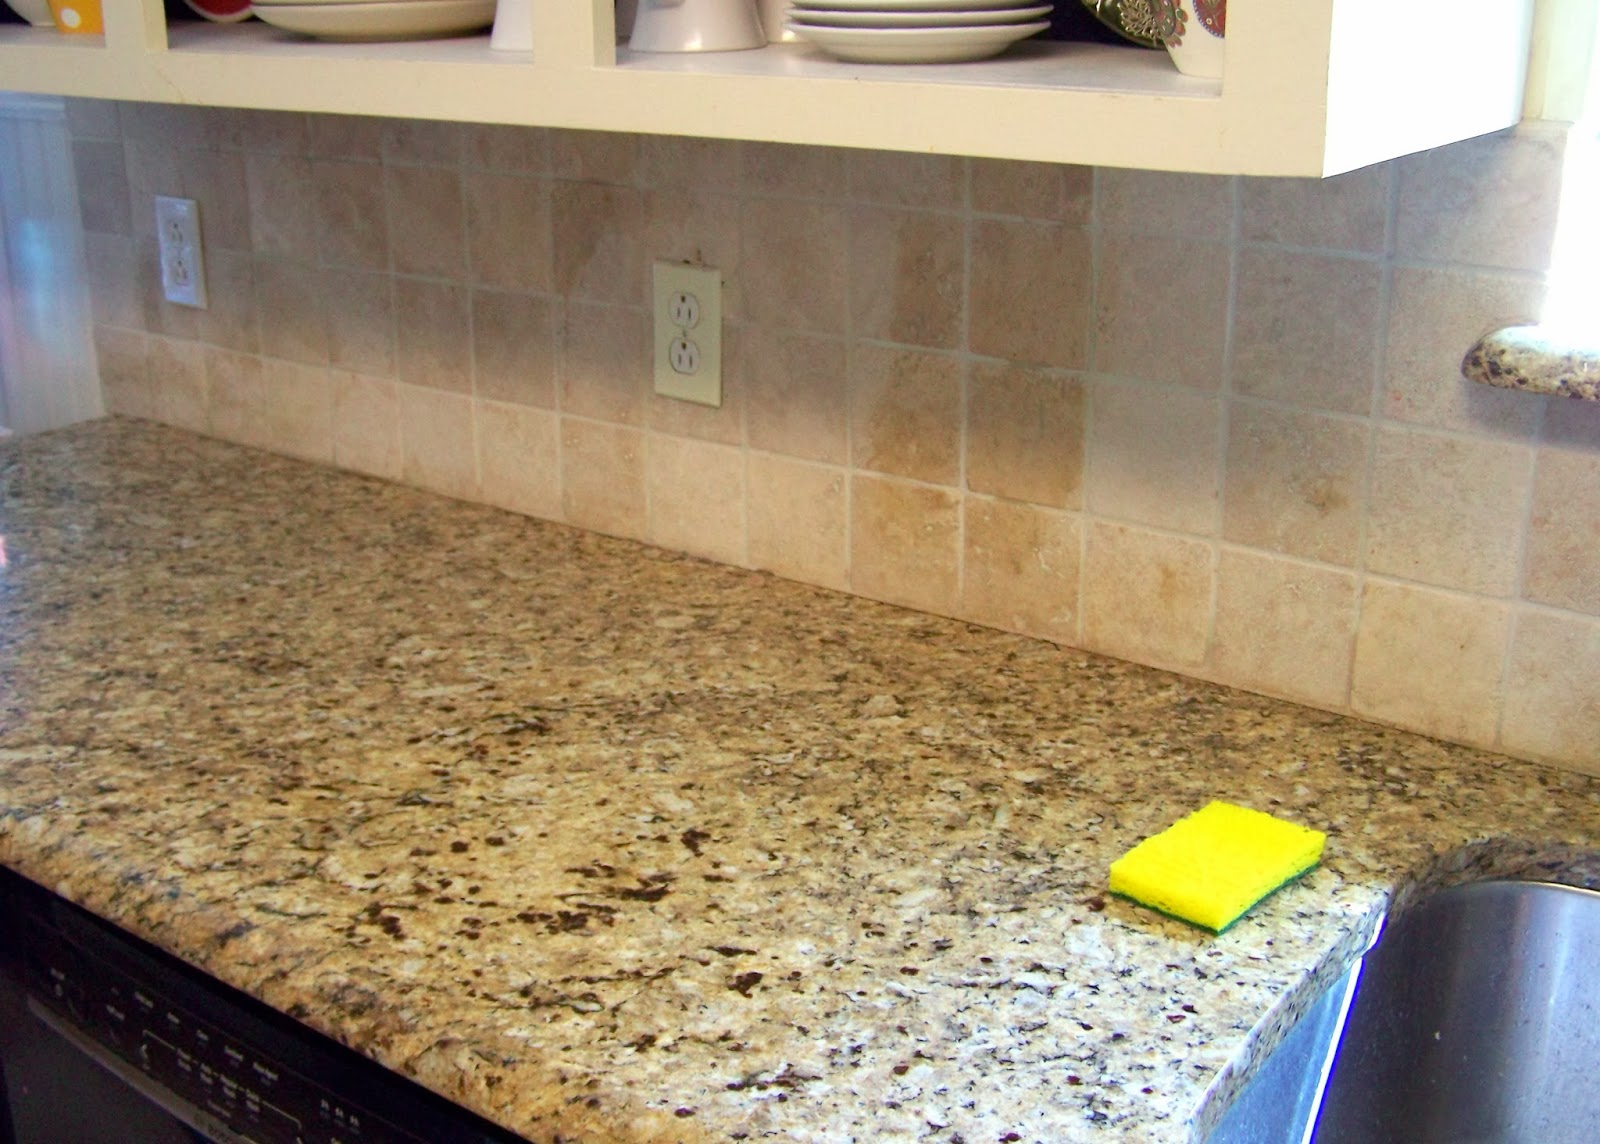 Paint Backsplash Tile Older And Wisor Painting A Tile Backsplash And More Easy Kitchen .